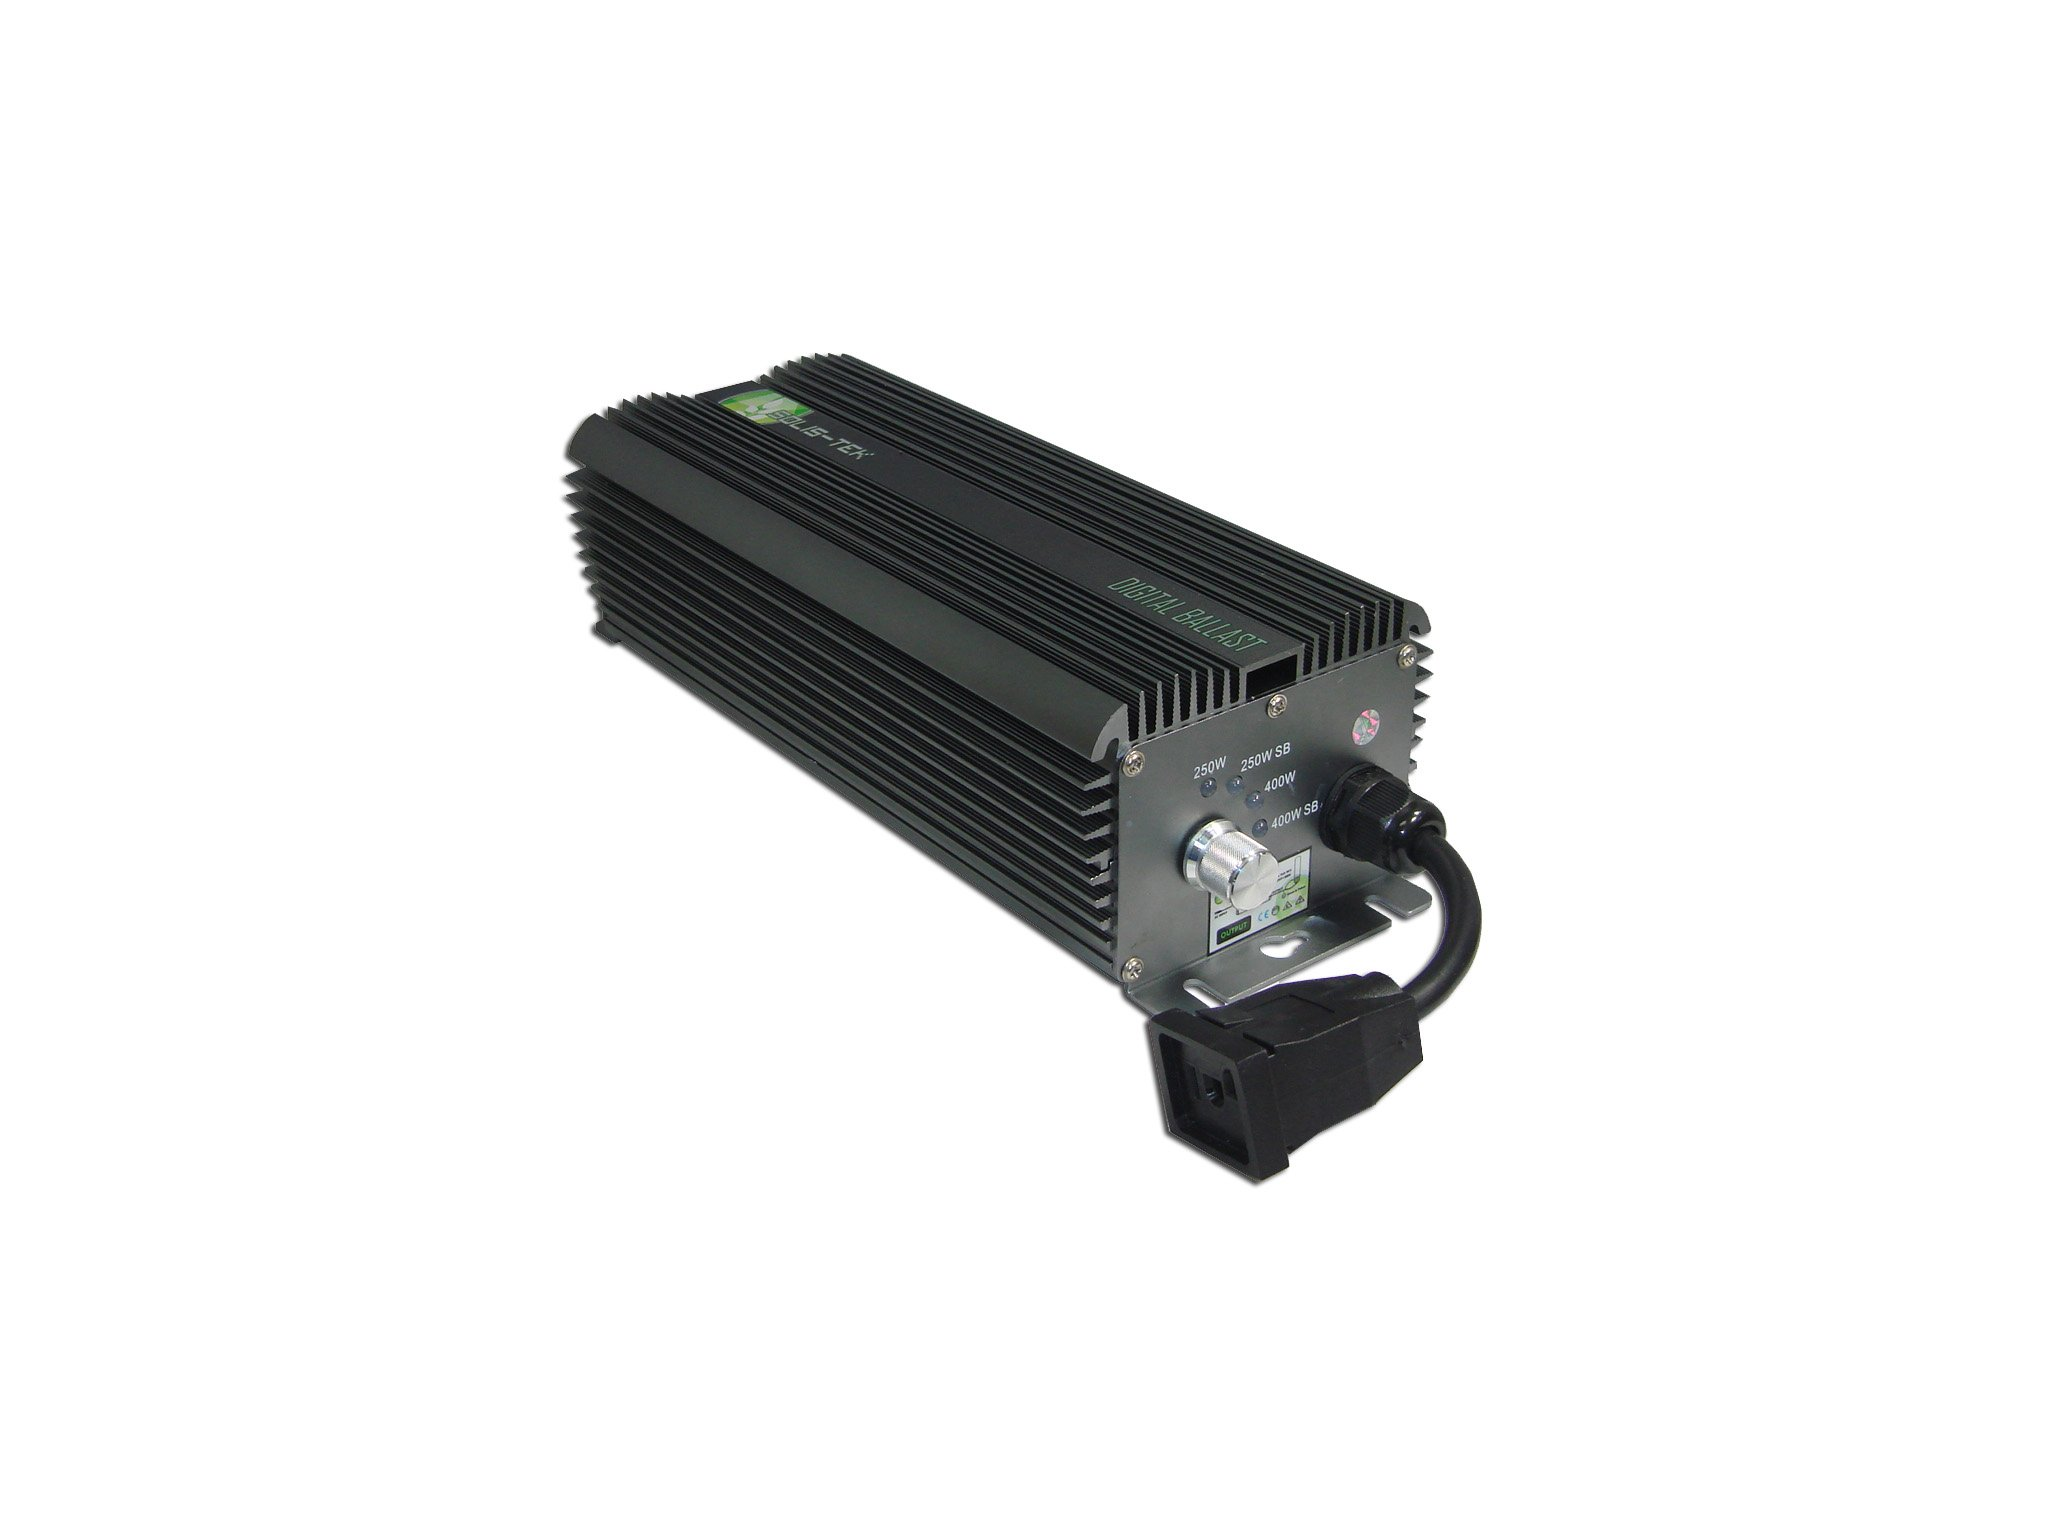 SolisTek 400W Digital Ballast